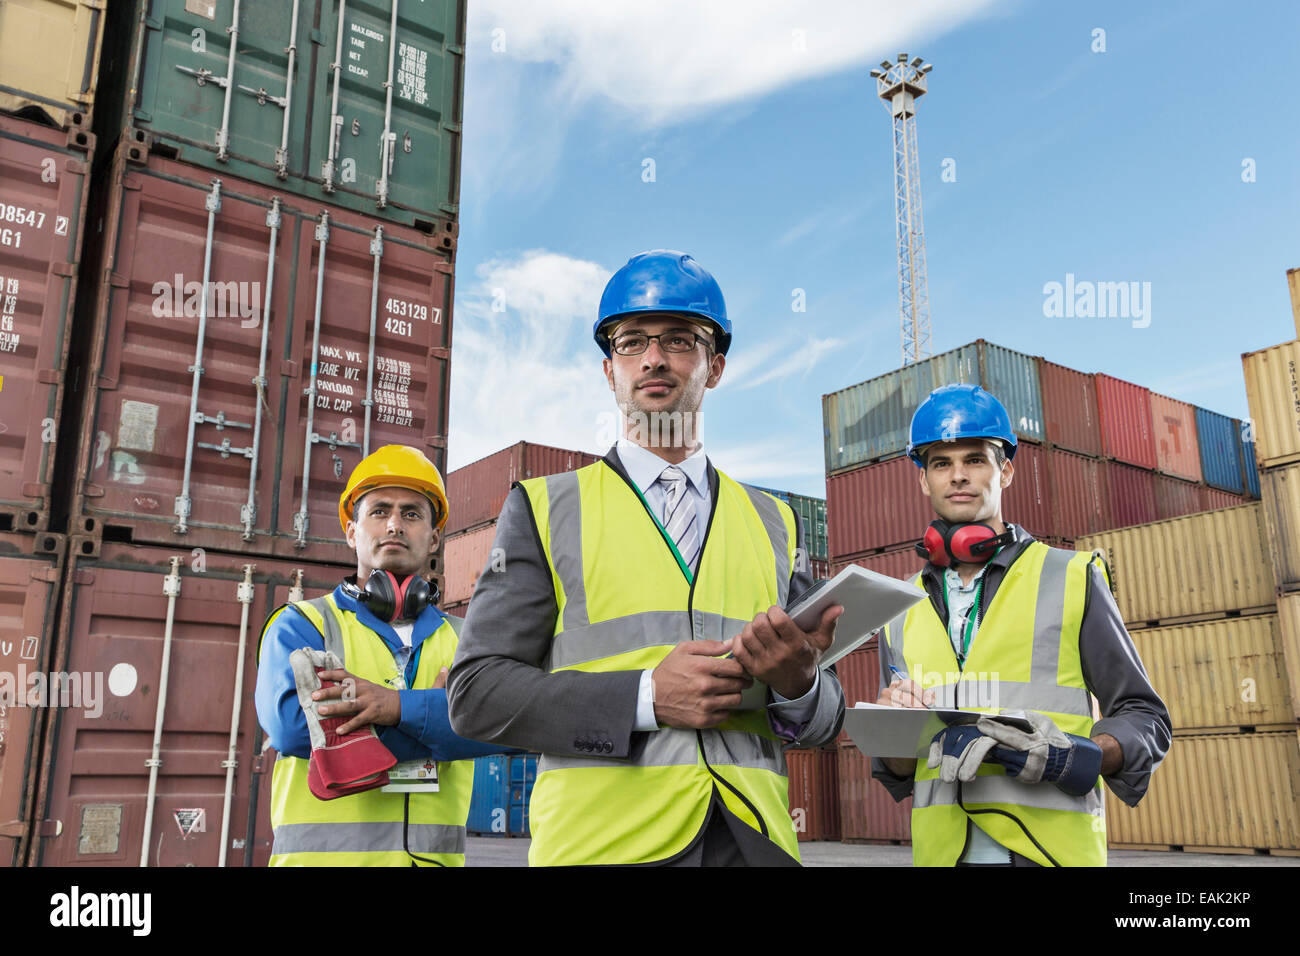 Businessmen wearing protective workwear near cargo containers - Stock Image